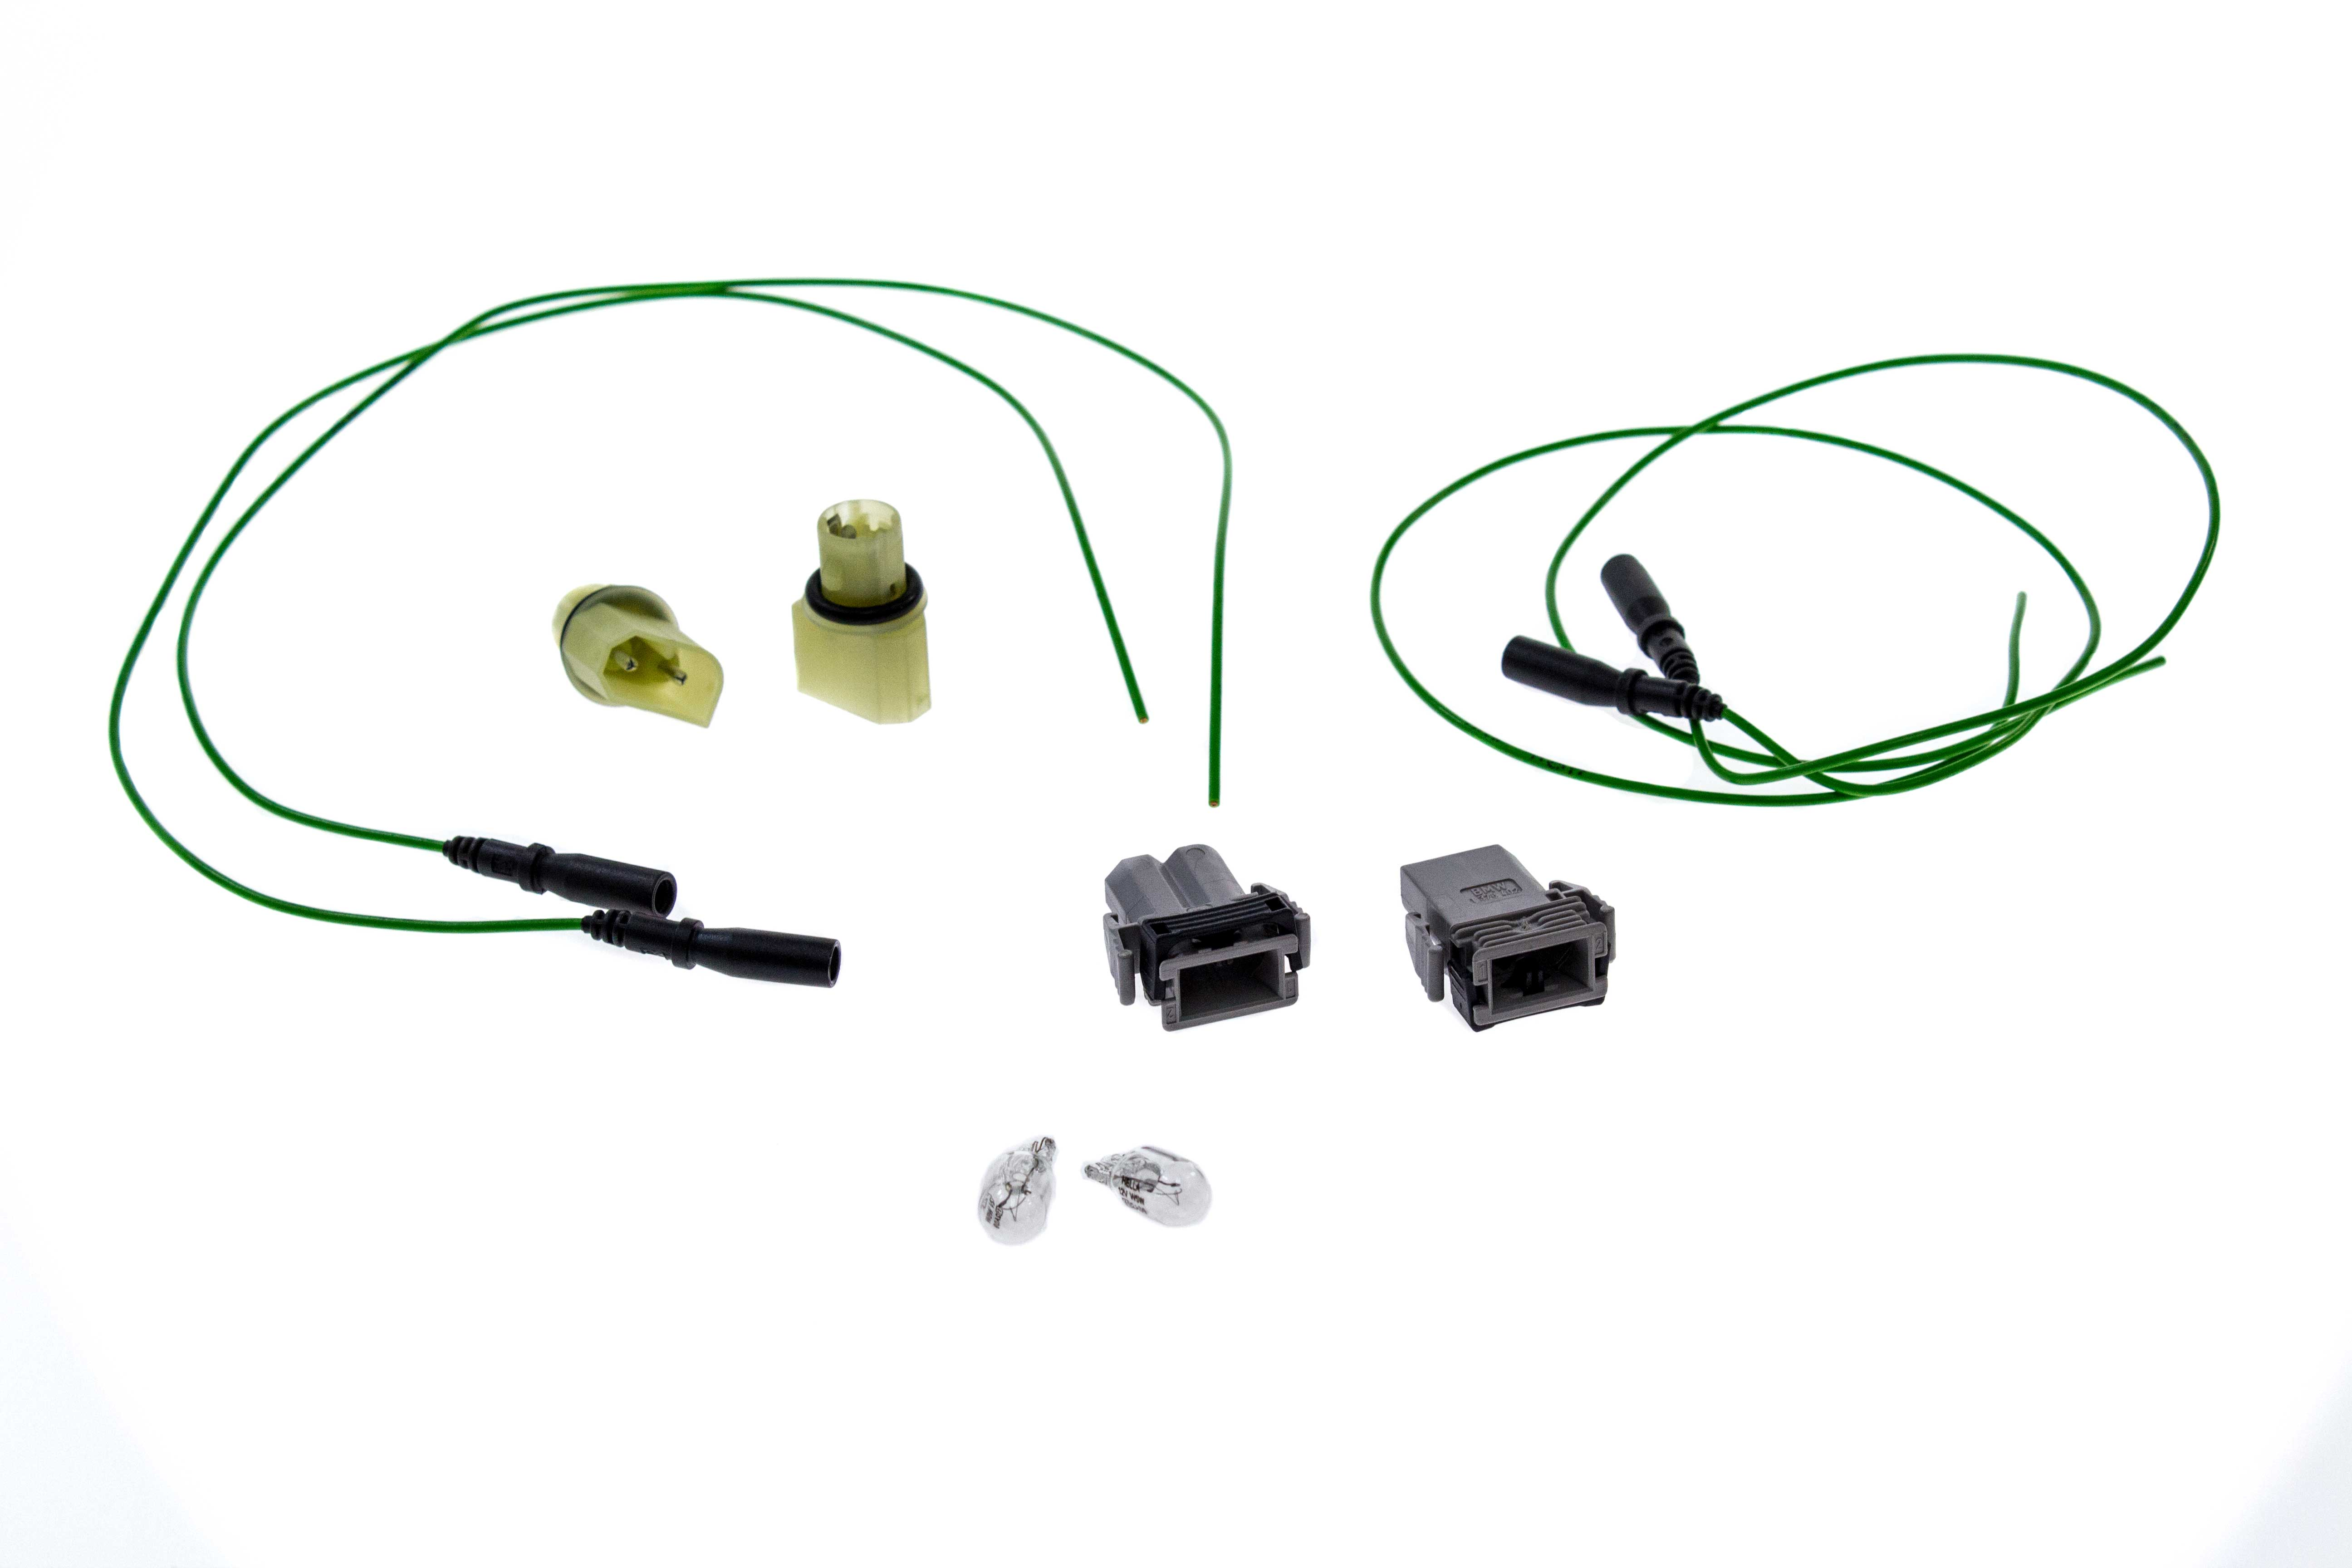 63141376979KIT AAZ Preferred Side Marker Lamp Connector; Connector, Wire Connectors, Sockets, Bulbs; KIT